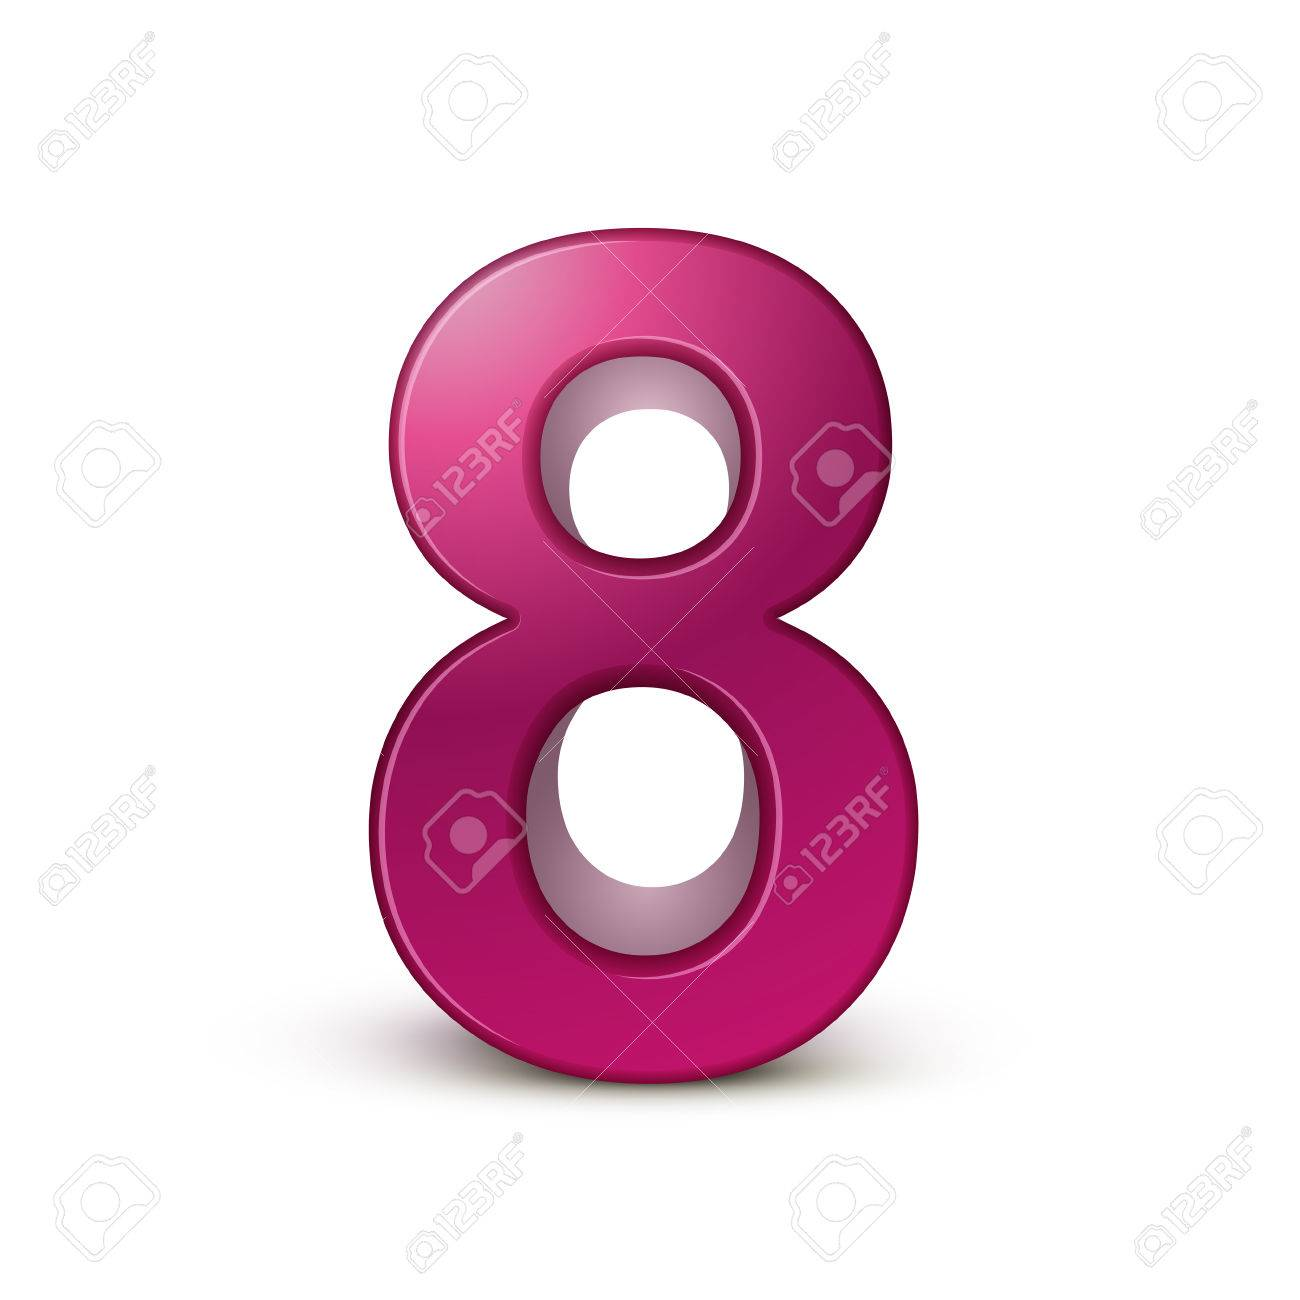 3d shiny pink number 8 on white background royalty free cliparts rh 123rf com